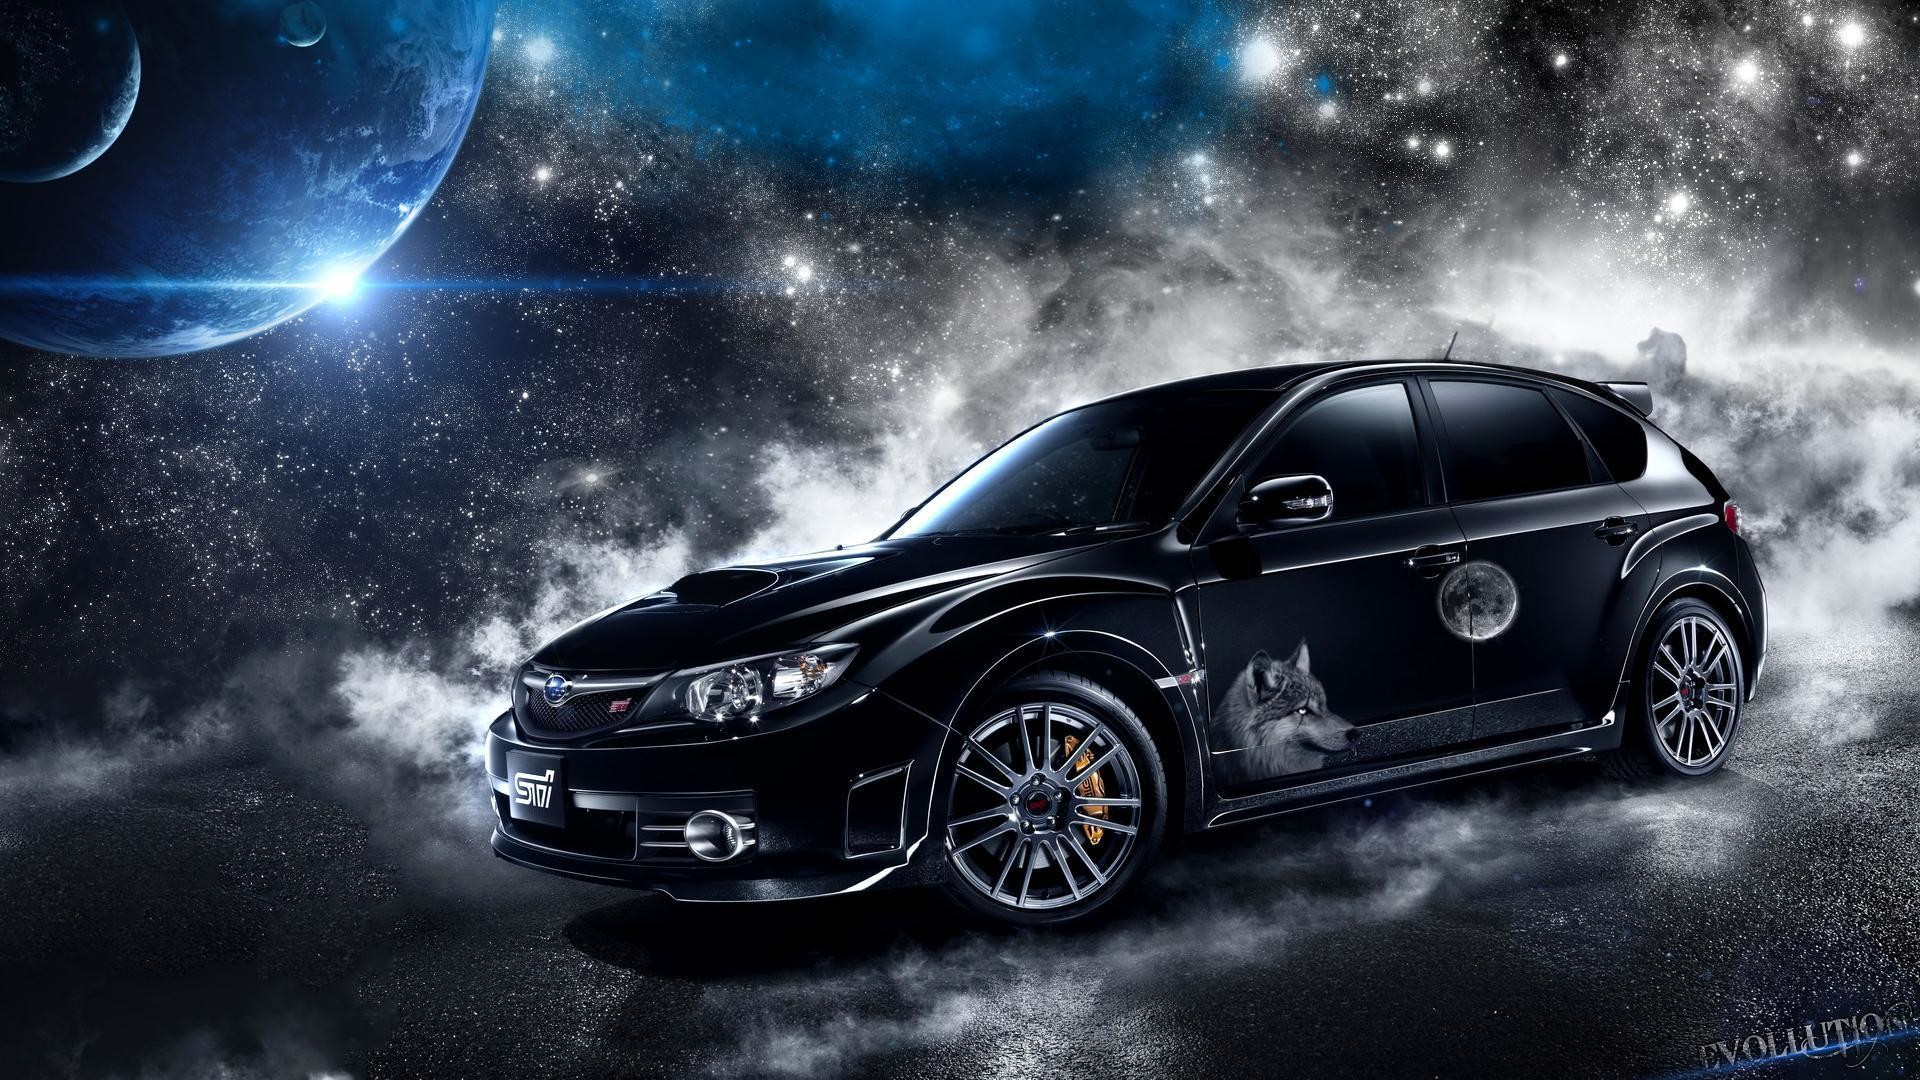 Mini Subaru Wrx Sti Android Wallpaper HD | kyle's little toys .